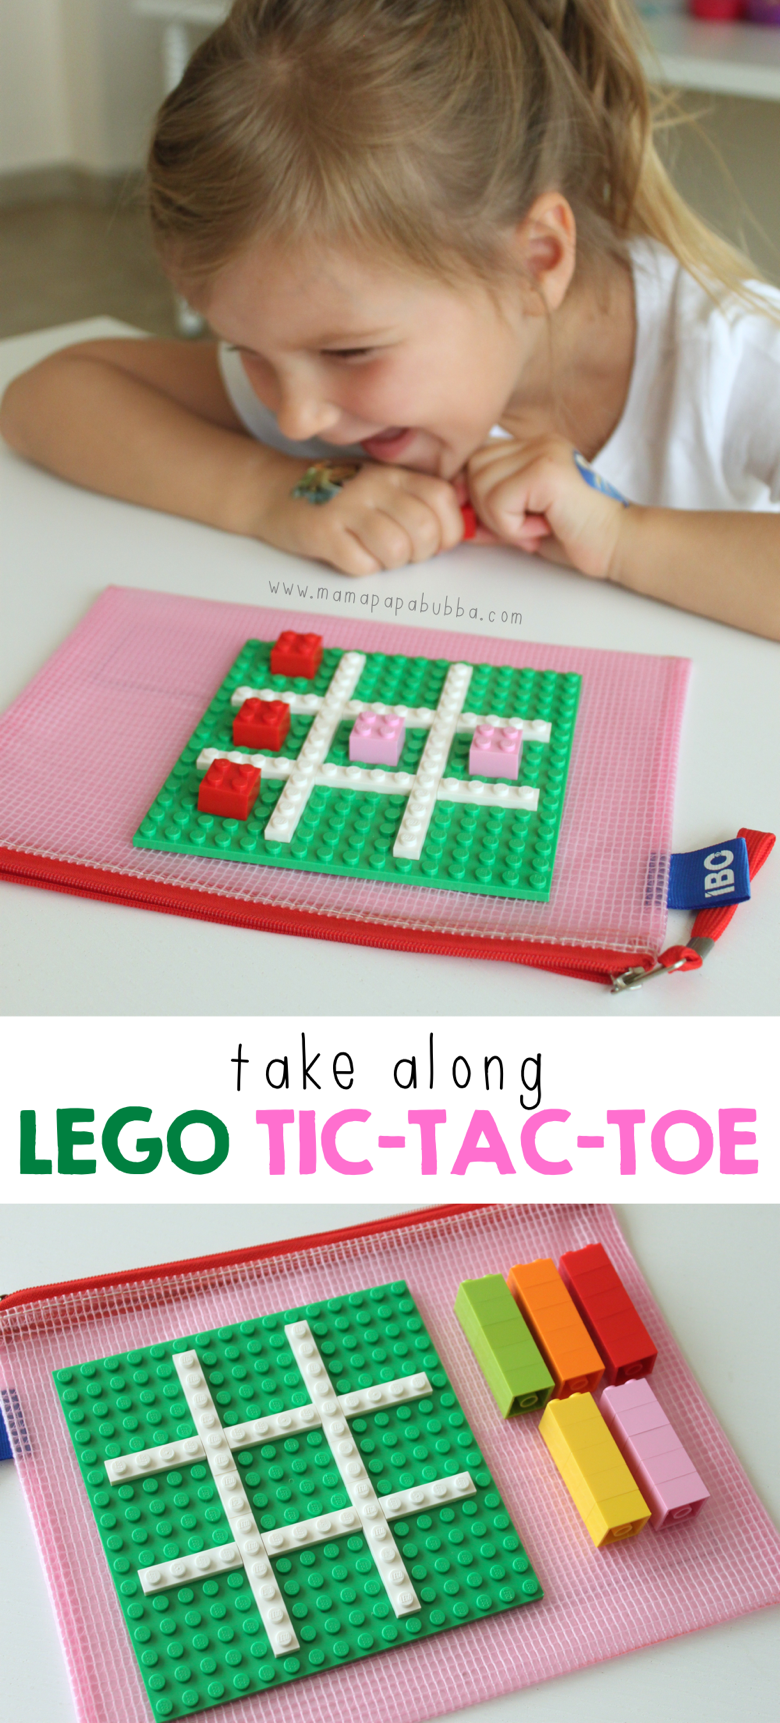 Take Along LEGO Tic Tac Toe | Mama Papa Bubba